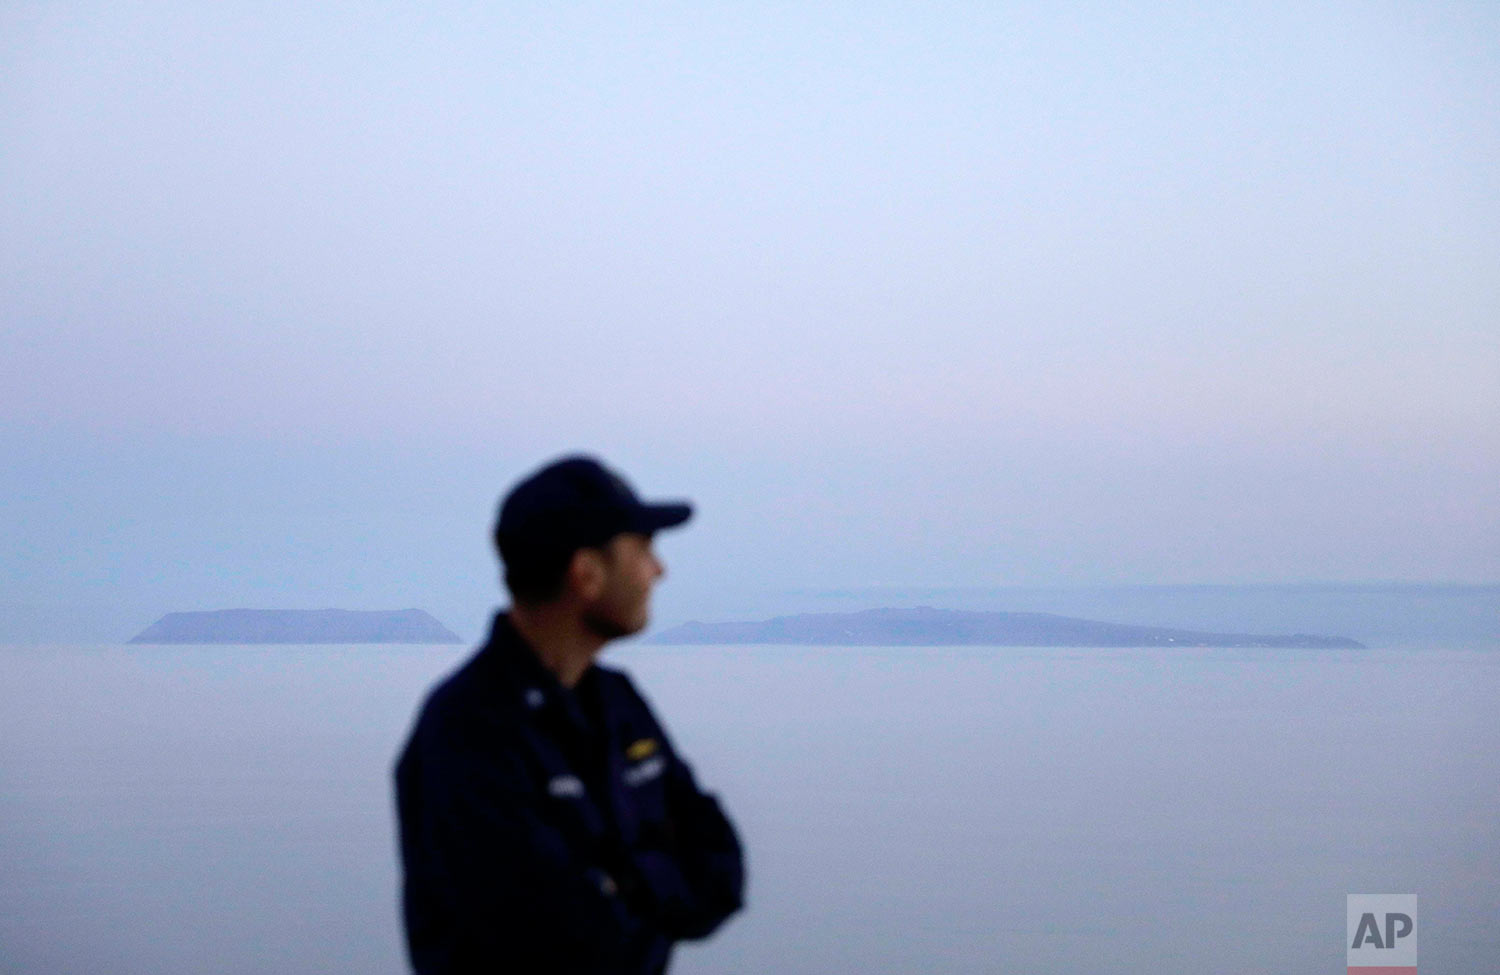 Cmdr. Bill Woityra, manager for domestic and polar icebreaking for the U.S. Coast Guard, looks out to sea while passing the American island of Little Diomede, Alaska, left, and the Russian island of Big Diomede, right, as the Finnish icebreaker MSV Nordica sails along the international date line through the Bering Strait, Friday, July 14, 2017. The international date line divides the two islands, so Little Diomede is sometimes referred to as Yesterday Isle and Big Diomede as Tomorrow Island. (AP Photo/David Goldman)